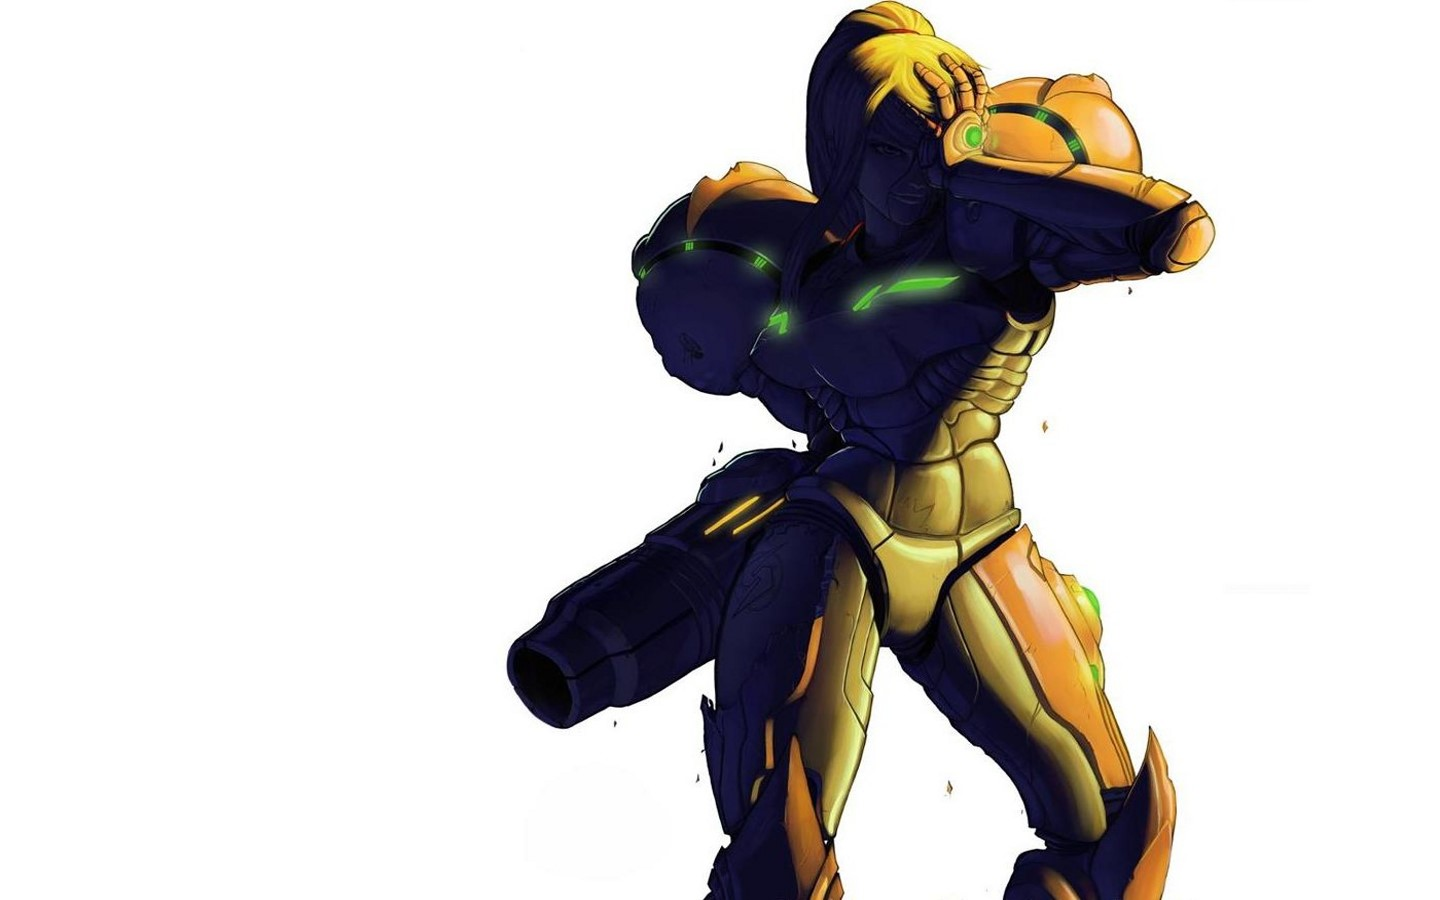 Gameboy Iphone X Wallpaper Metroid Samus Aran Wallpapers Metroid Samus Aran Stock